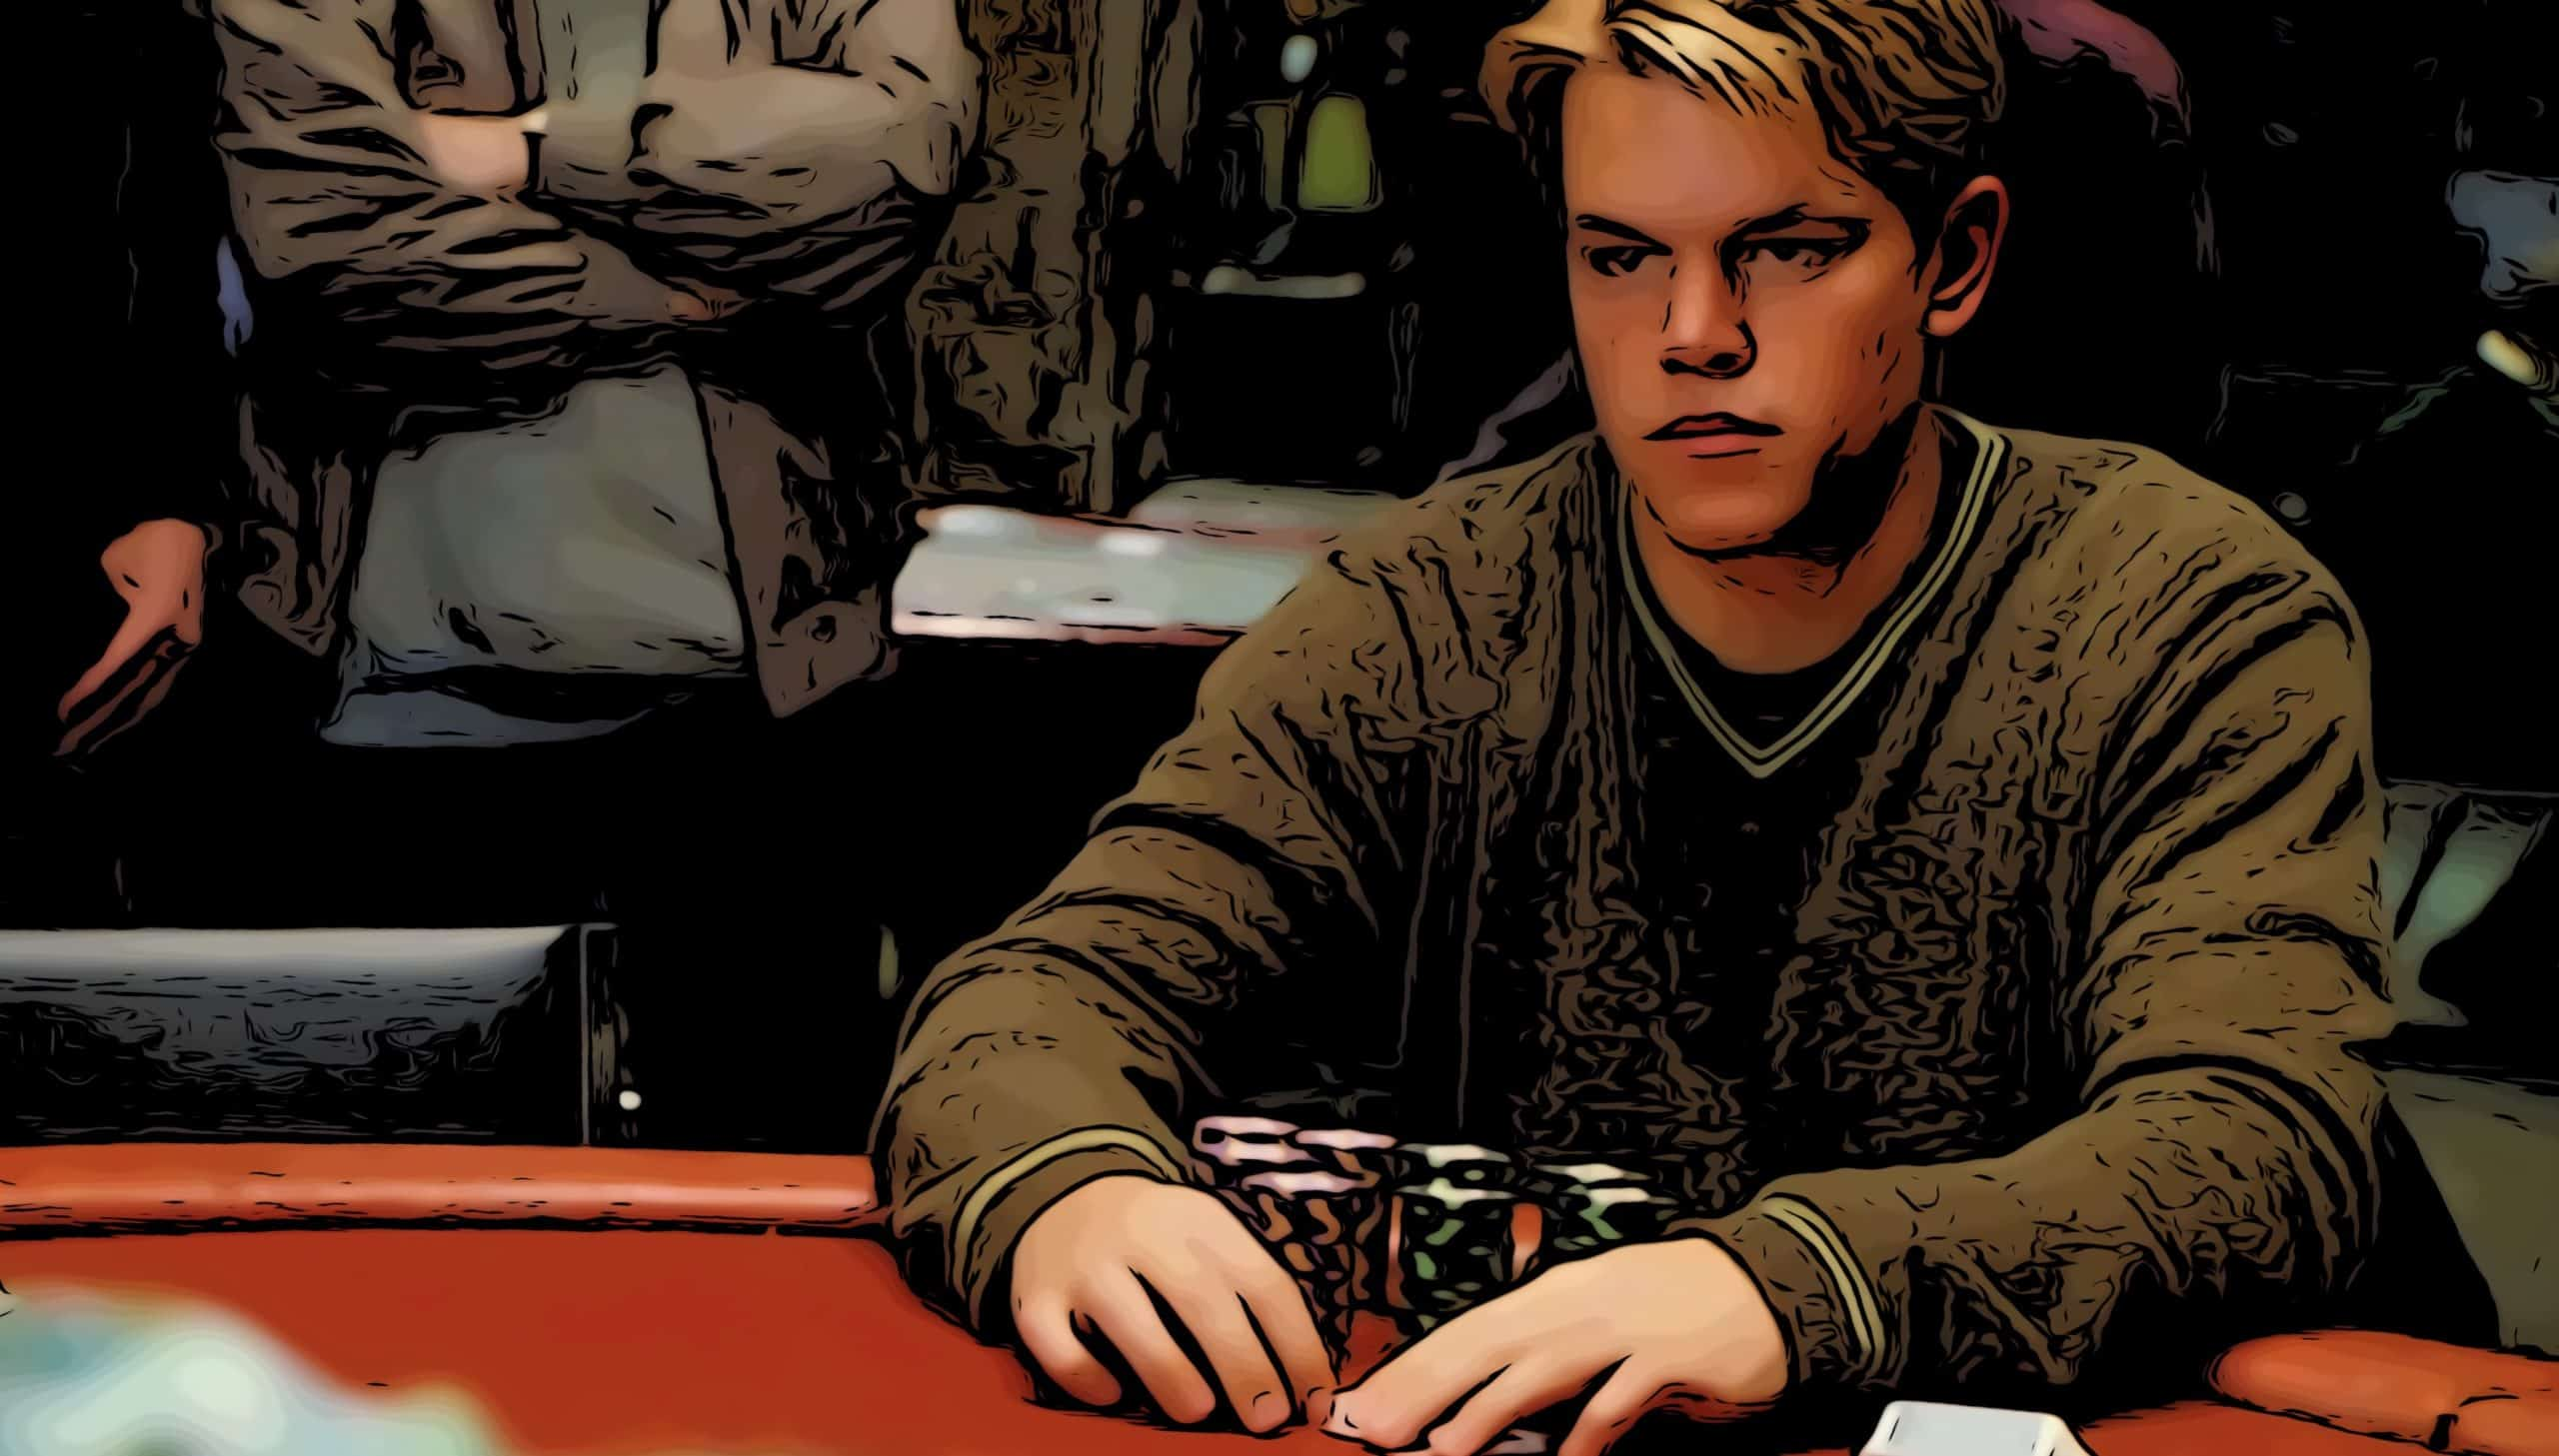 Scene from Rounders for gambling movies on Netflix post.